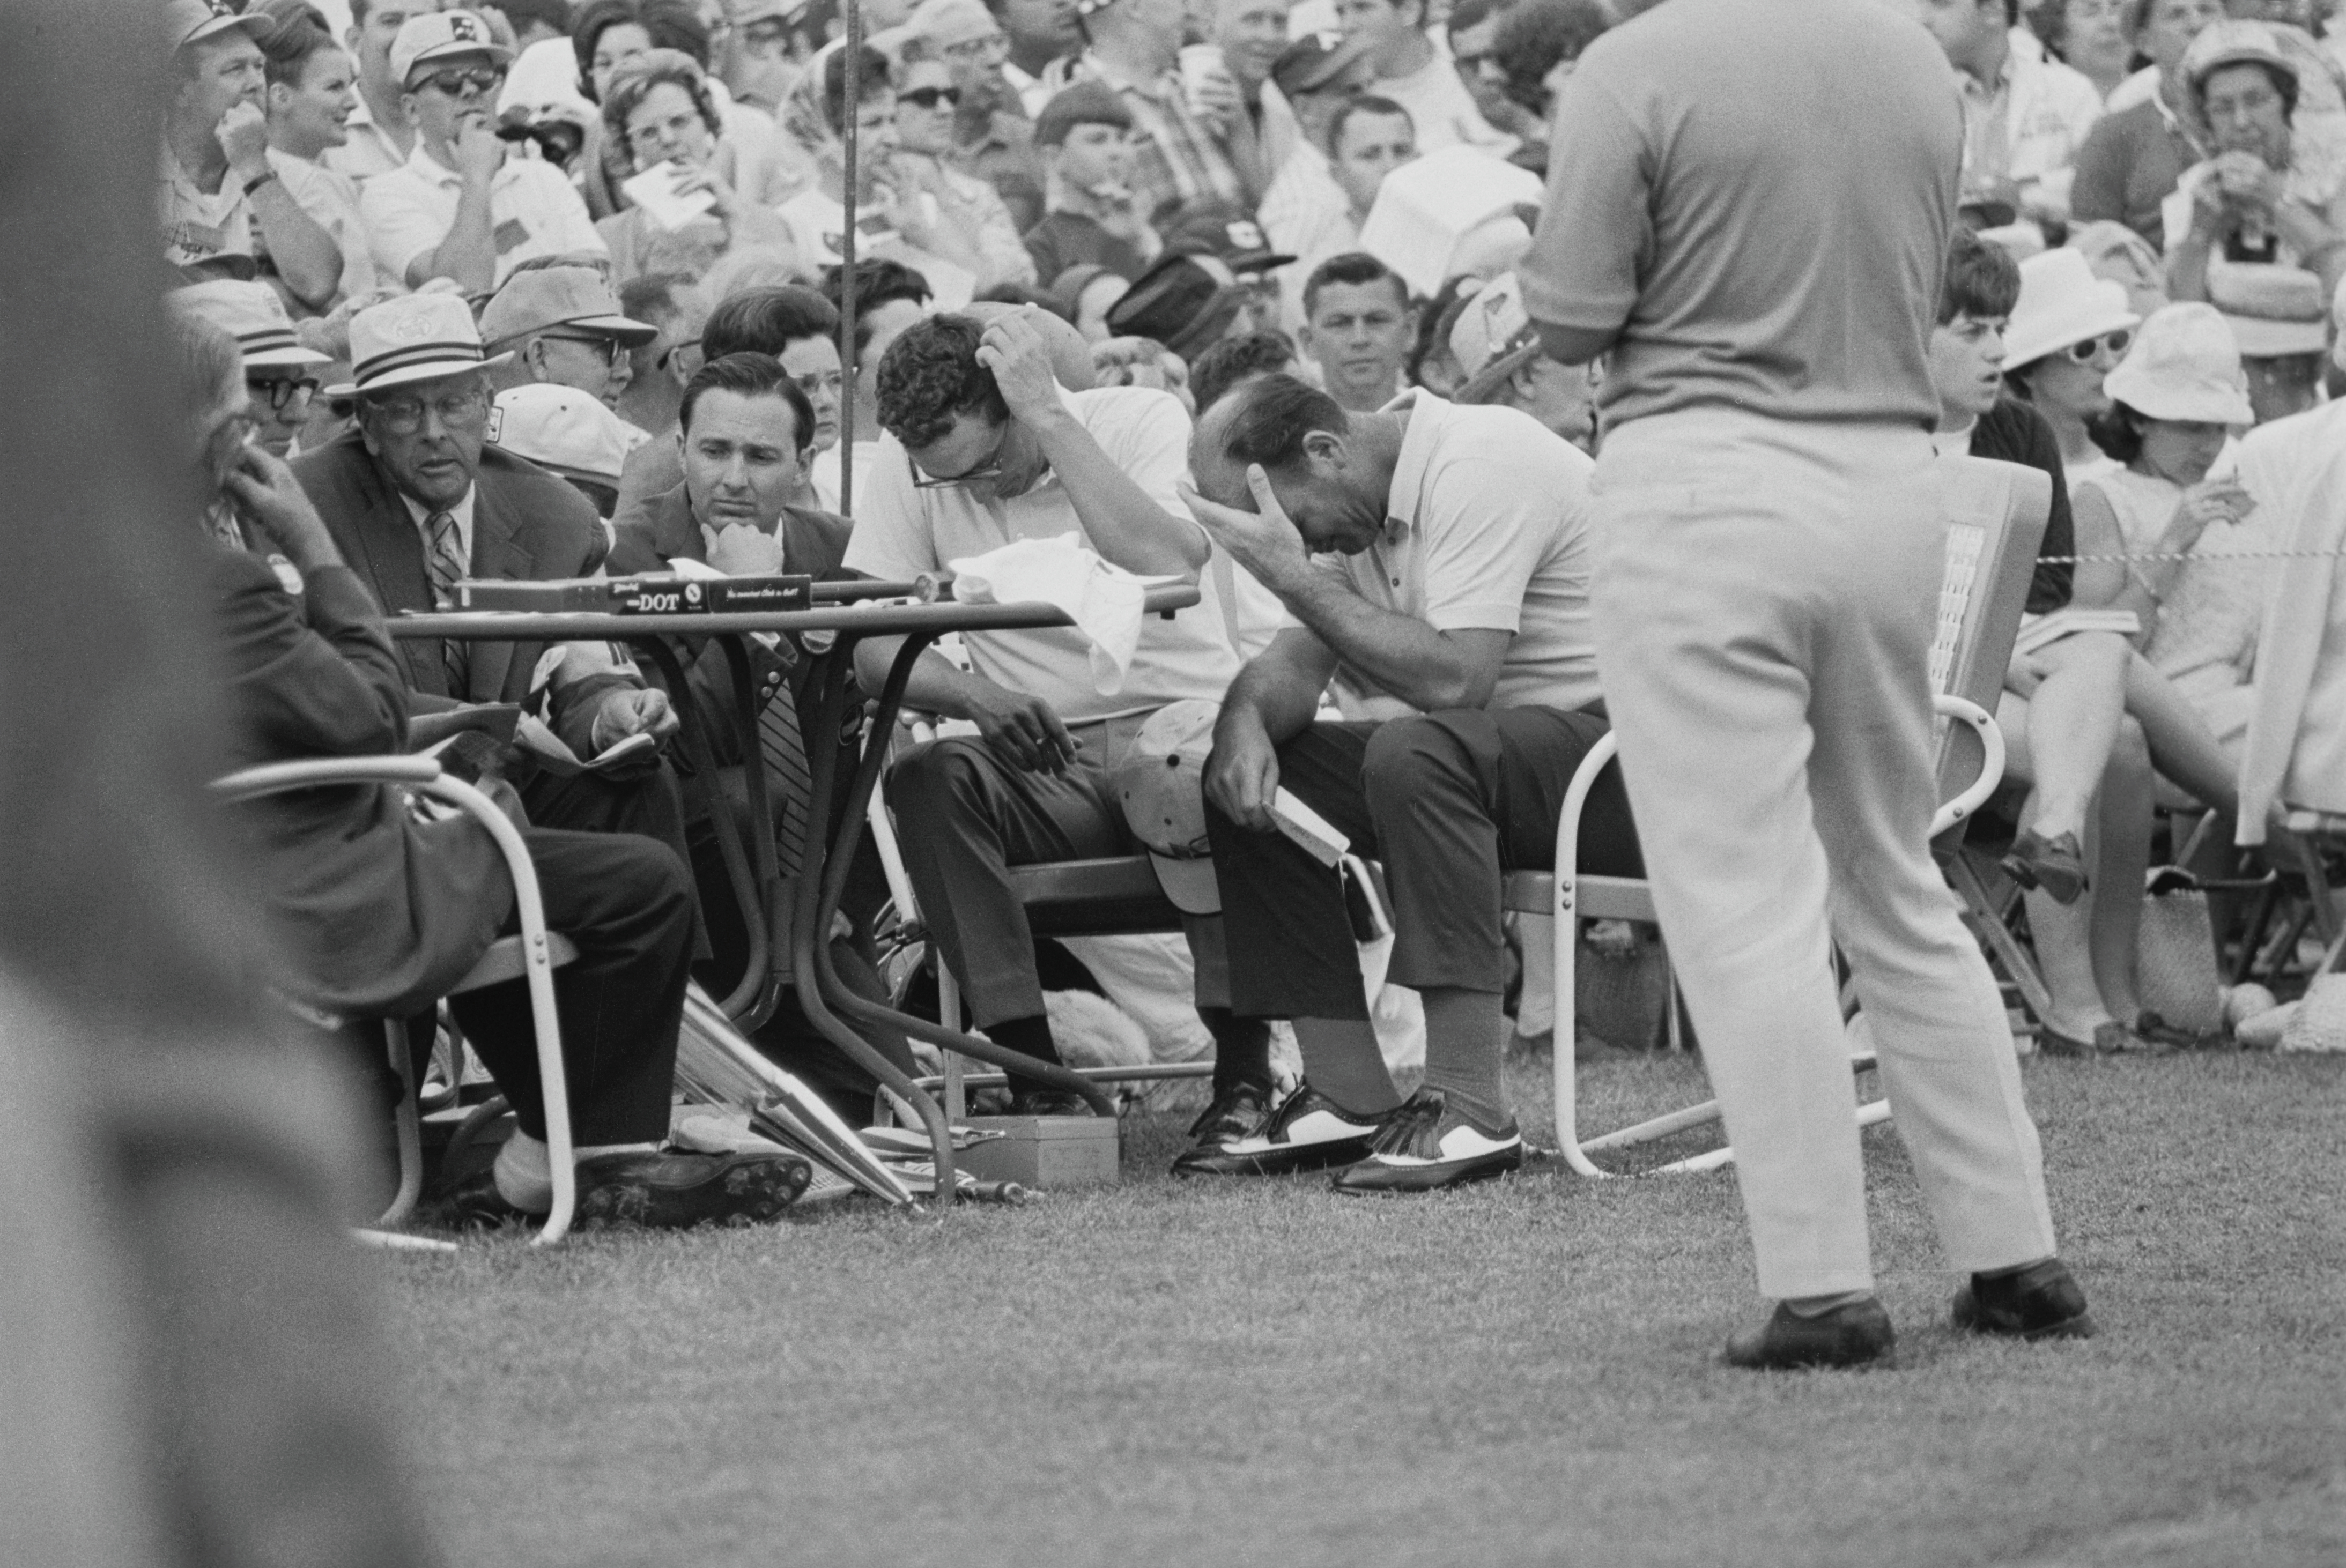 I Was There: The Collapse at The 1968 Masters